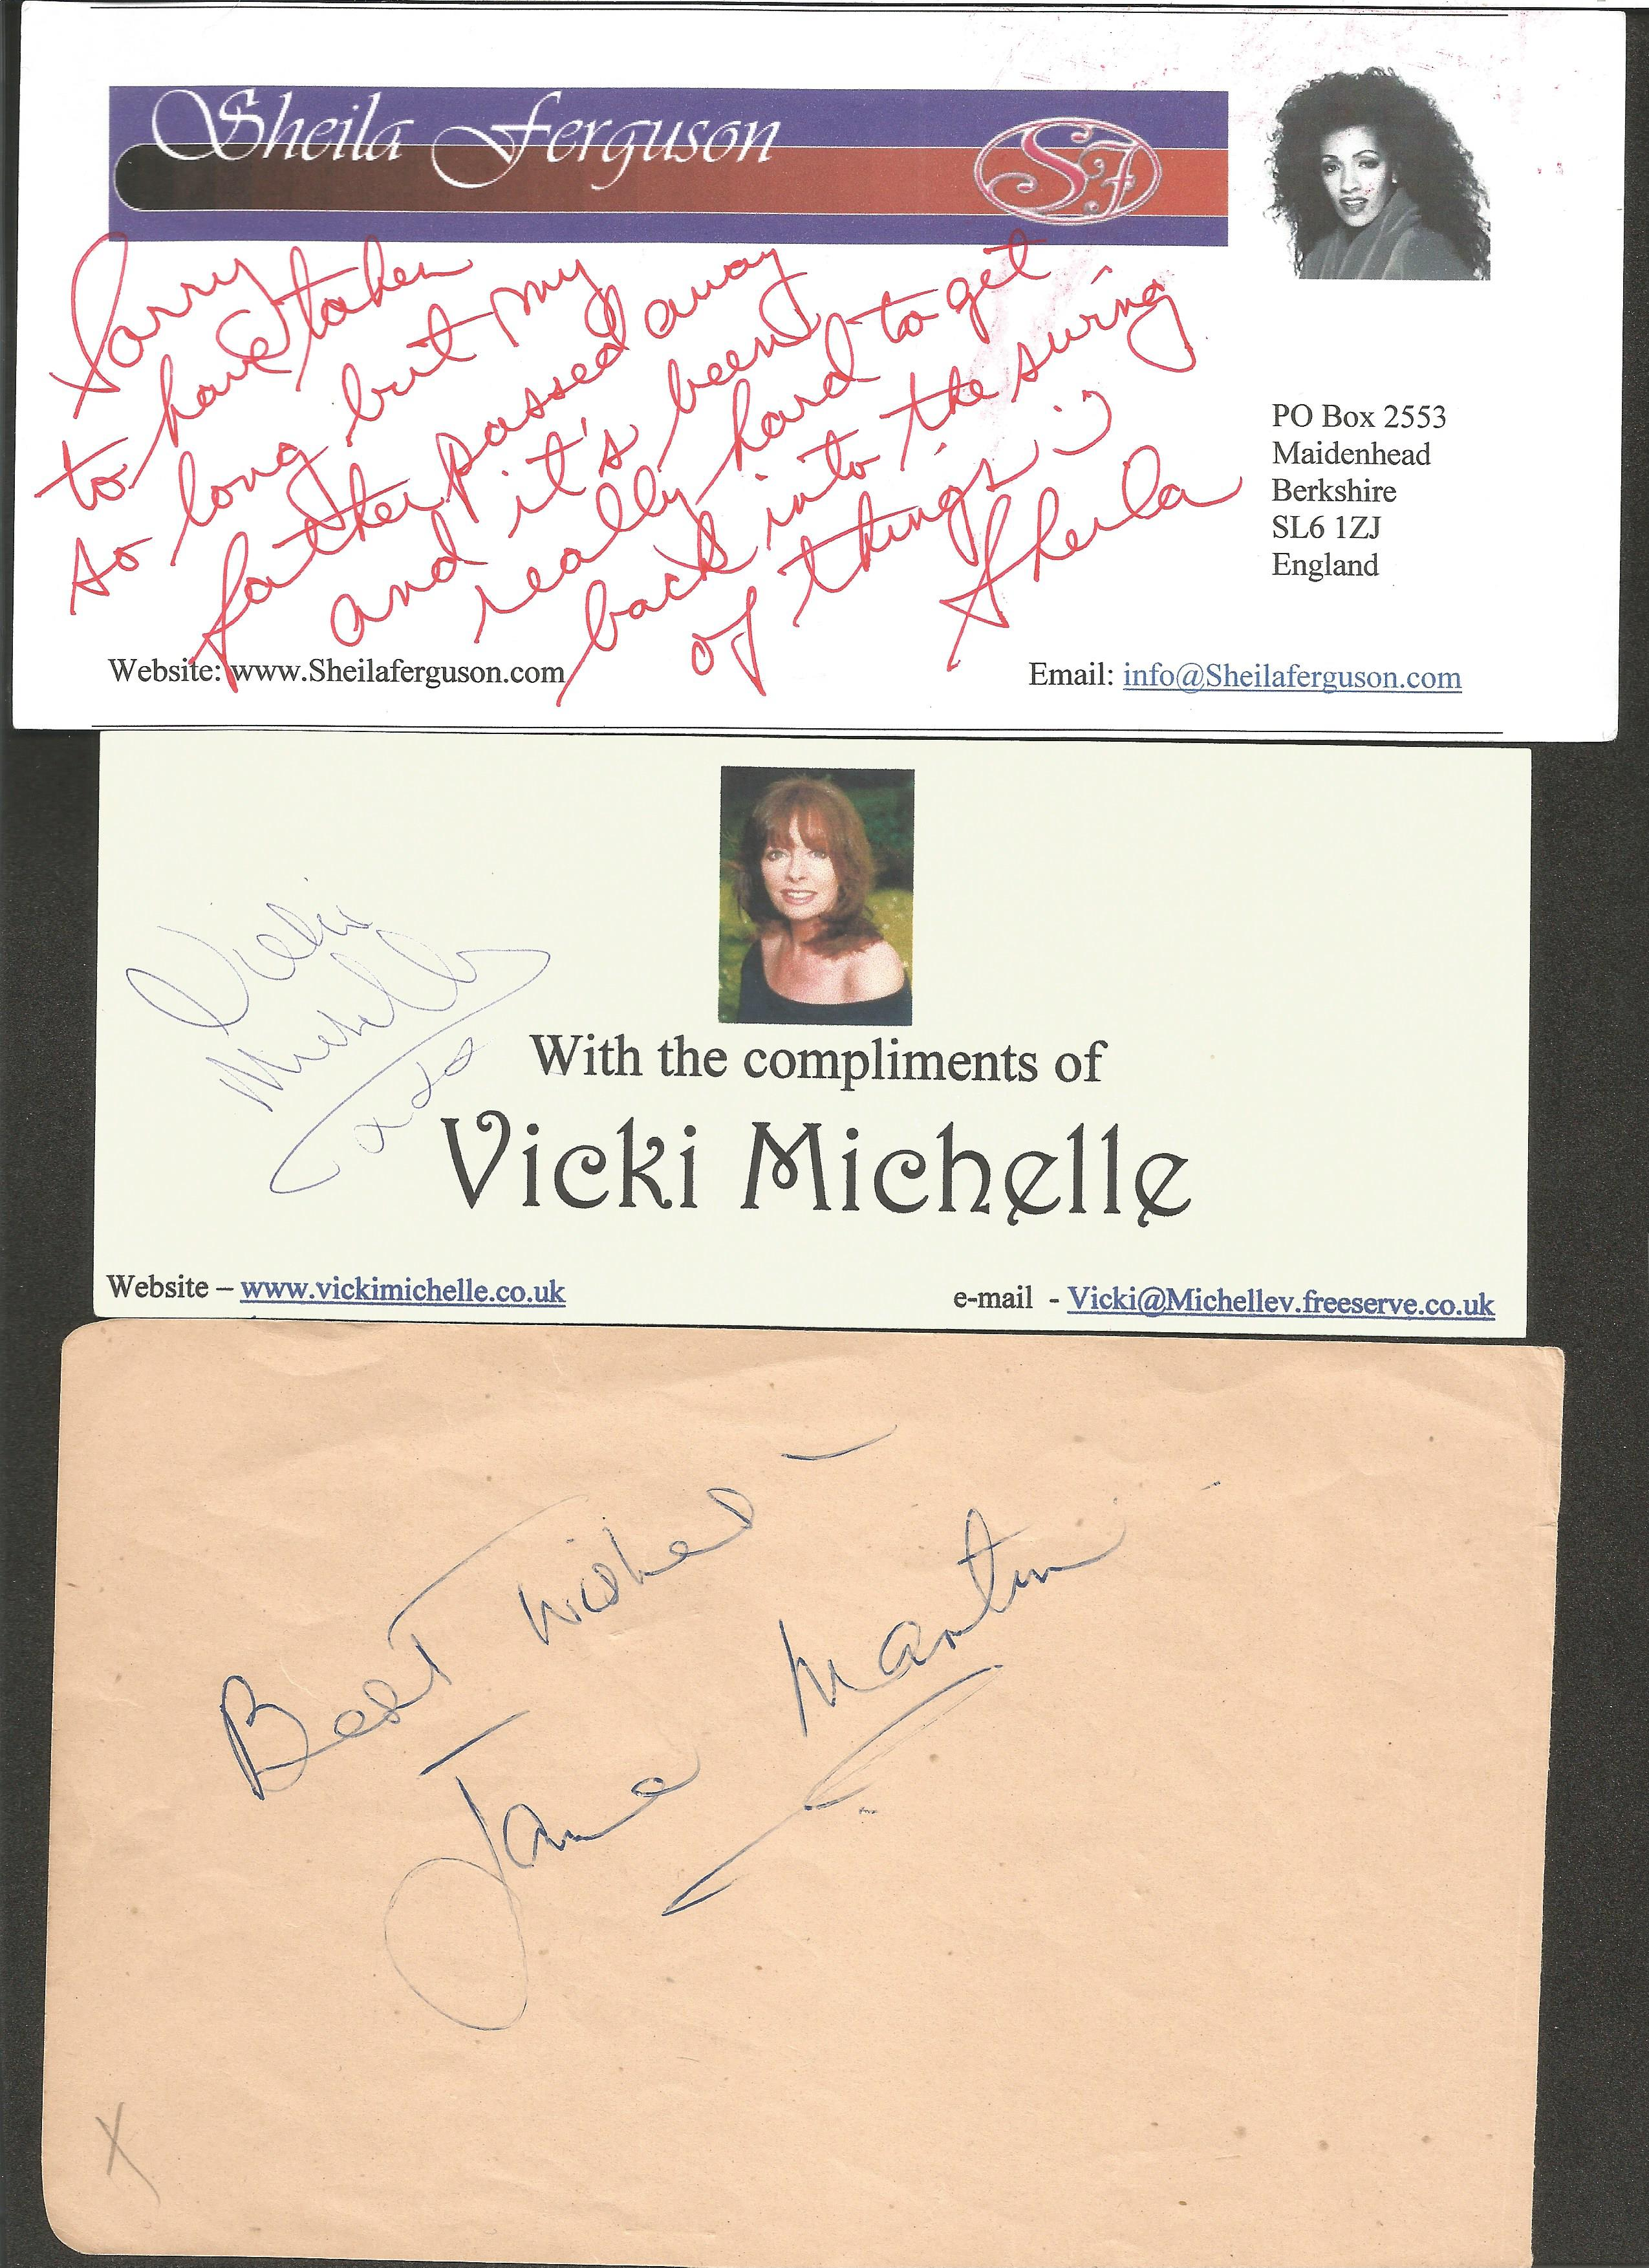 Entertainment signed collection Singer Sheila Ferguson, Vicki Michelle, Smith Brothers, Jane Martin